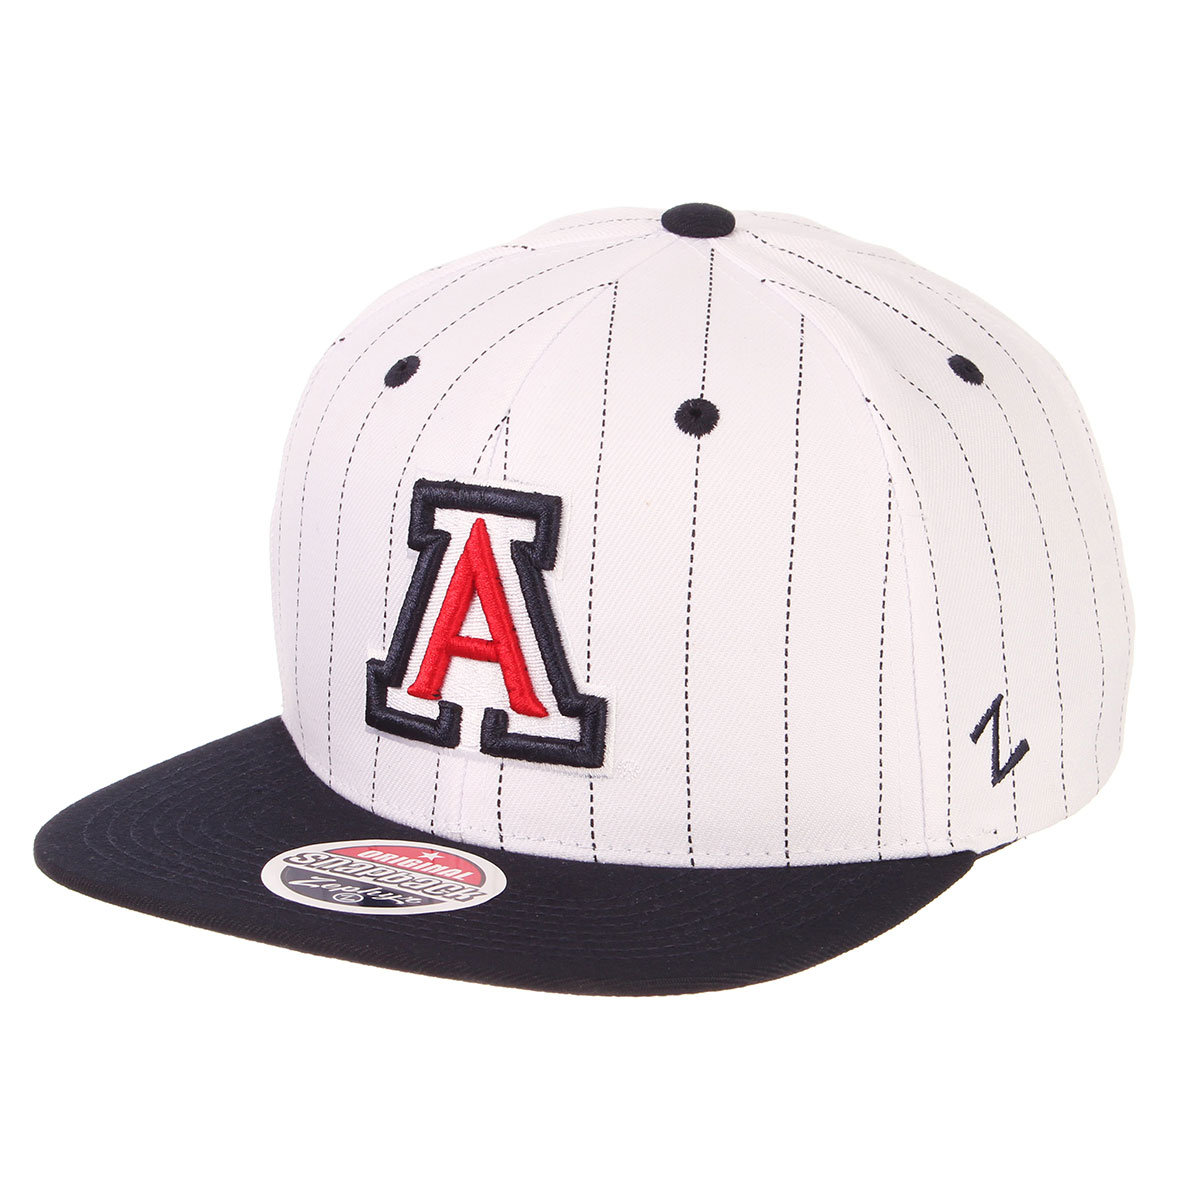 Image For HAT OF THE MONTH: Zephyr Arizona Pinstripe Snapback - White